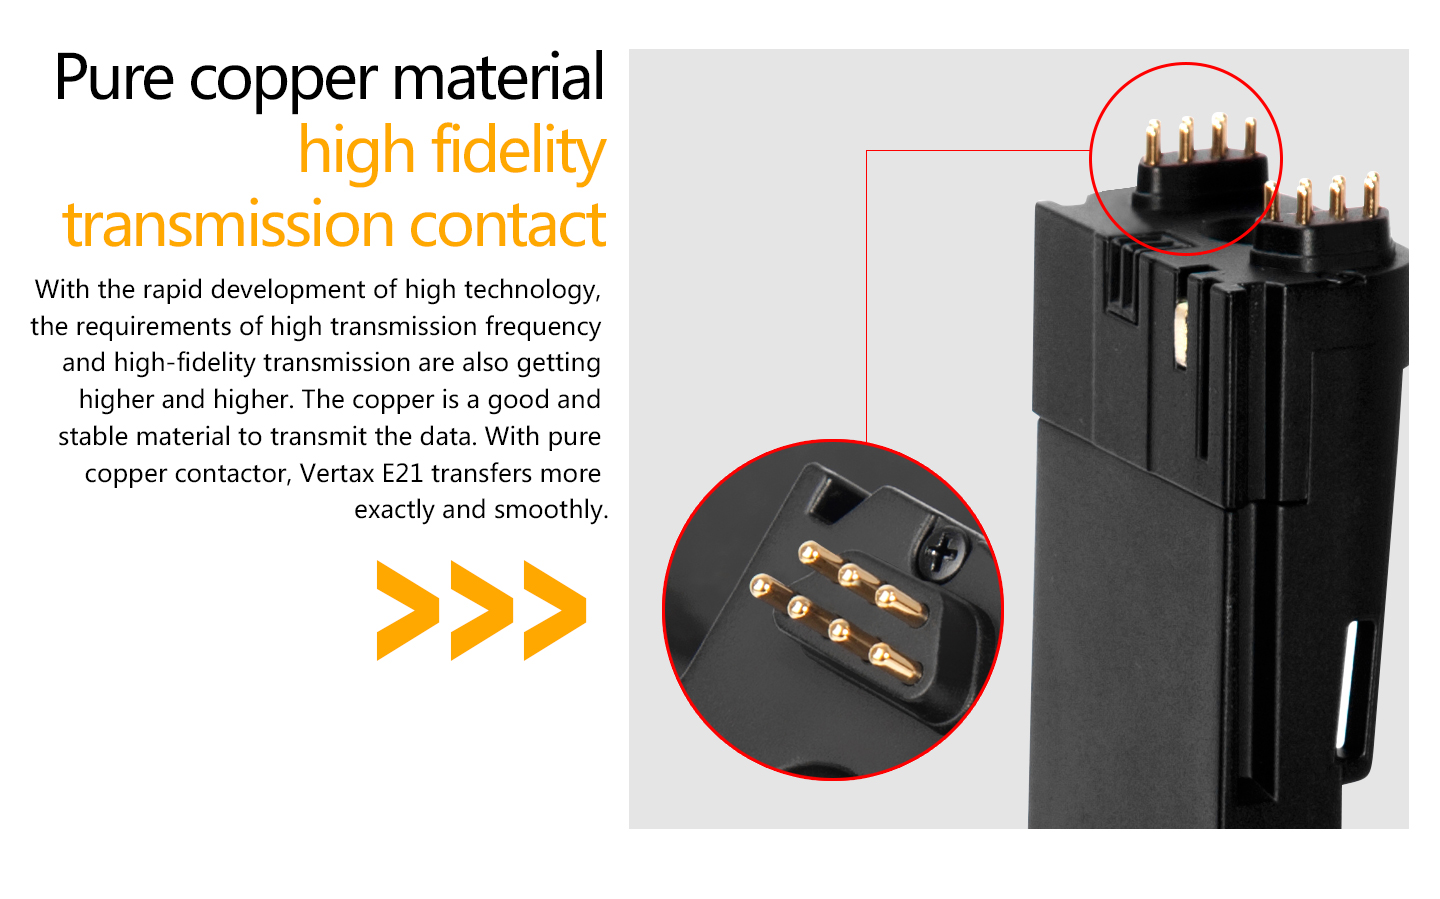 Pure copper material high fidelity tranmission contact